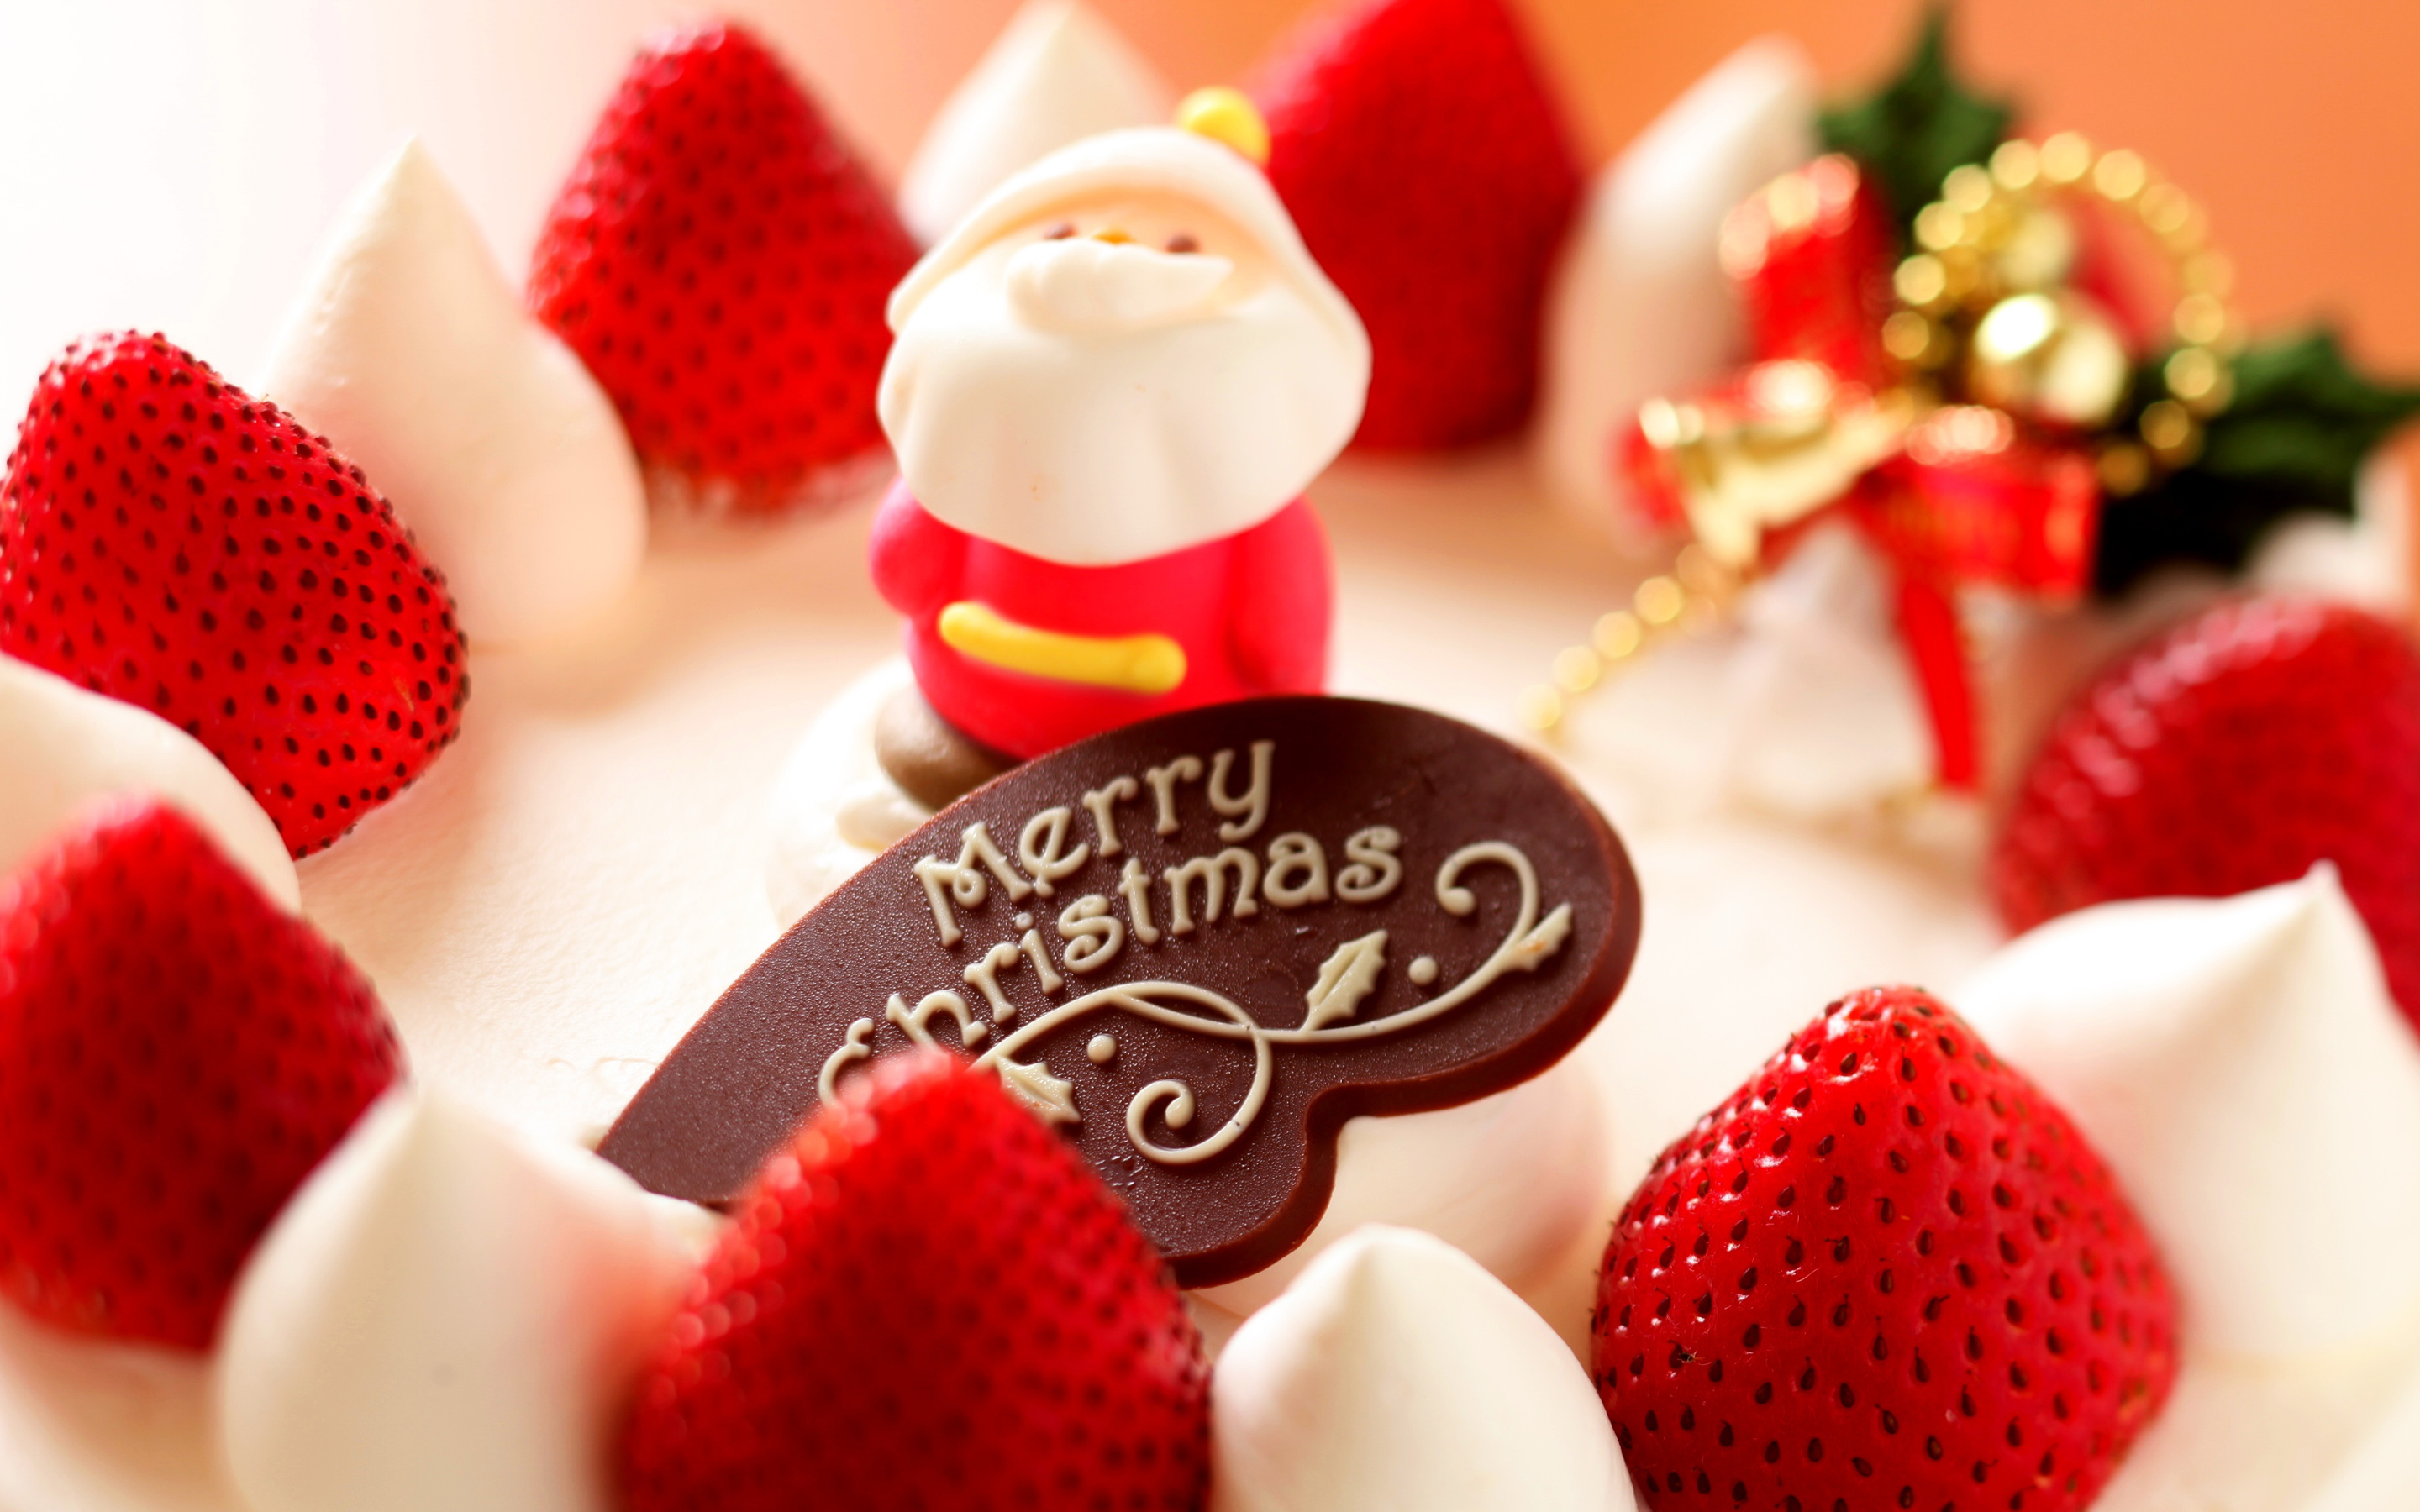 Merry Christmas Strawberry Dessert Wallpaper For Desktop